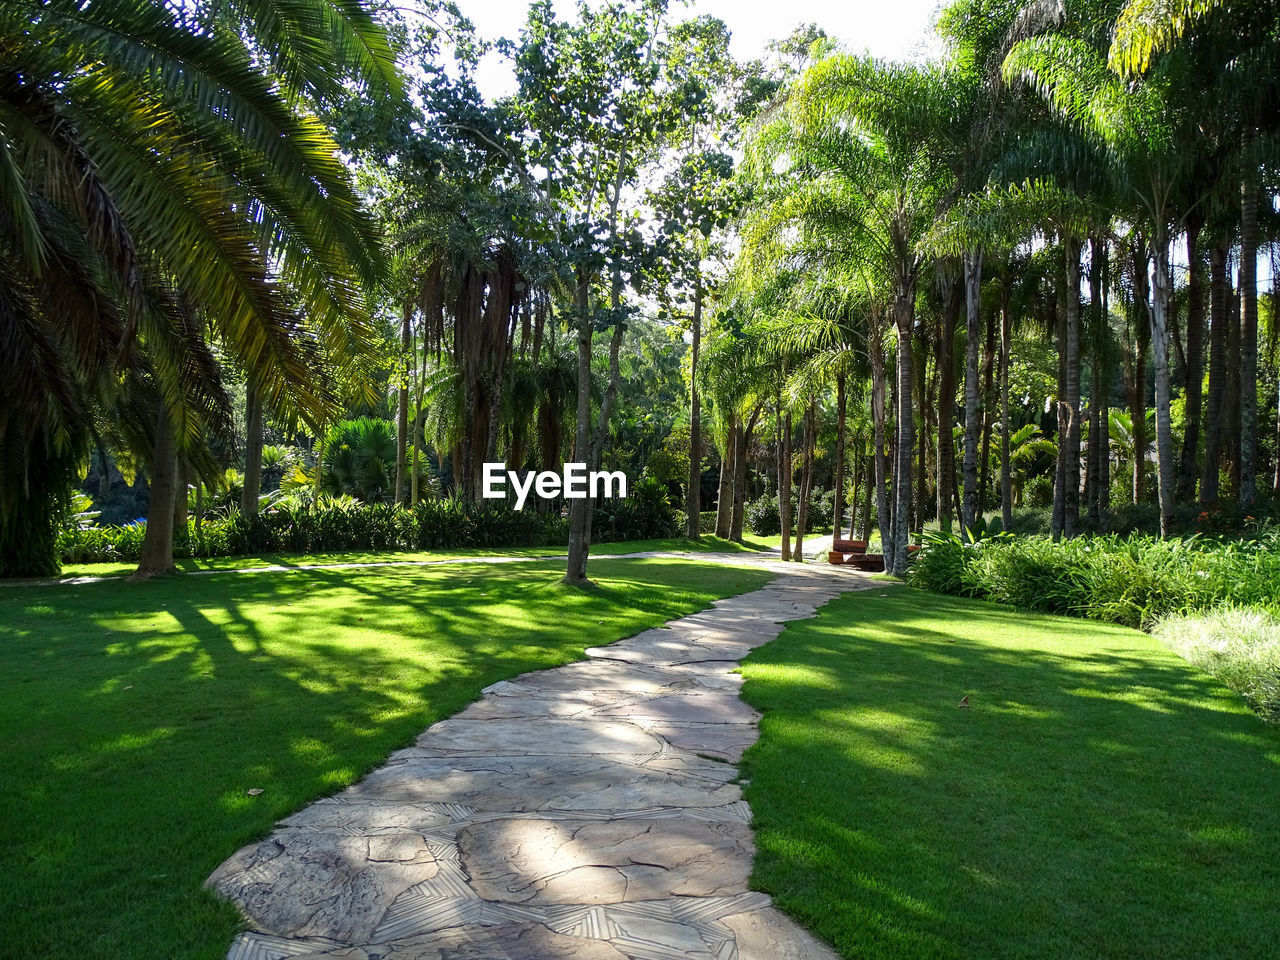 tree, plant, grass, tropical climate, green color, nature, palm tree, beauty in nature, no people, scenics - nature, tranquility, park, growth, tranquil scene, environment, sunlight, land, footpath, landscape, outdoors